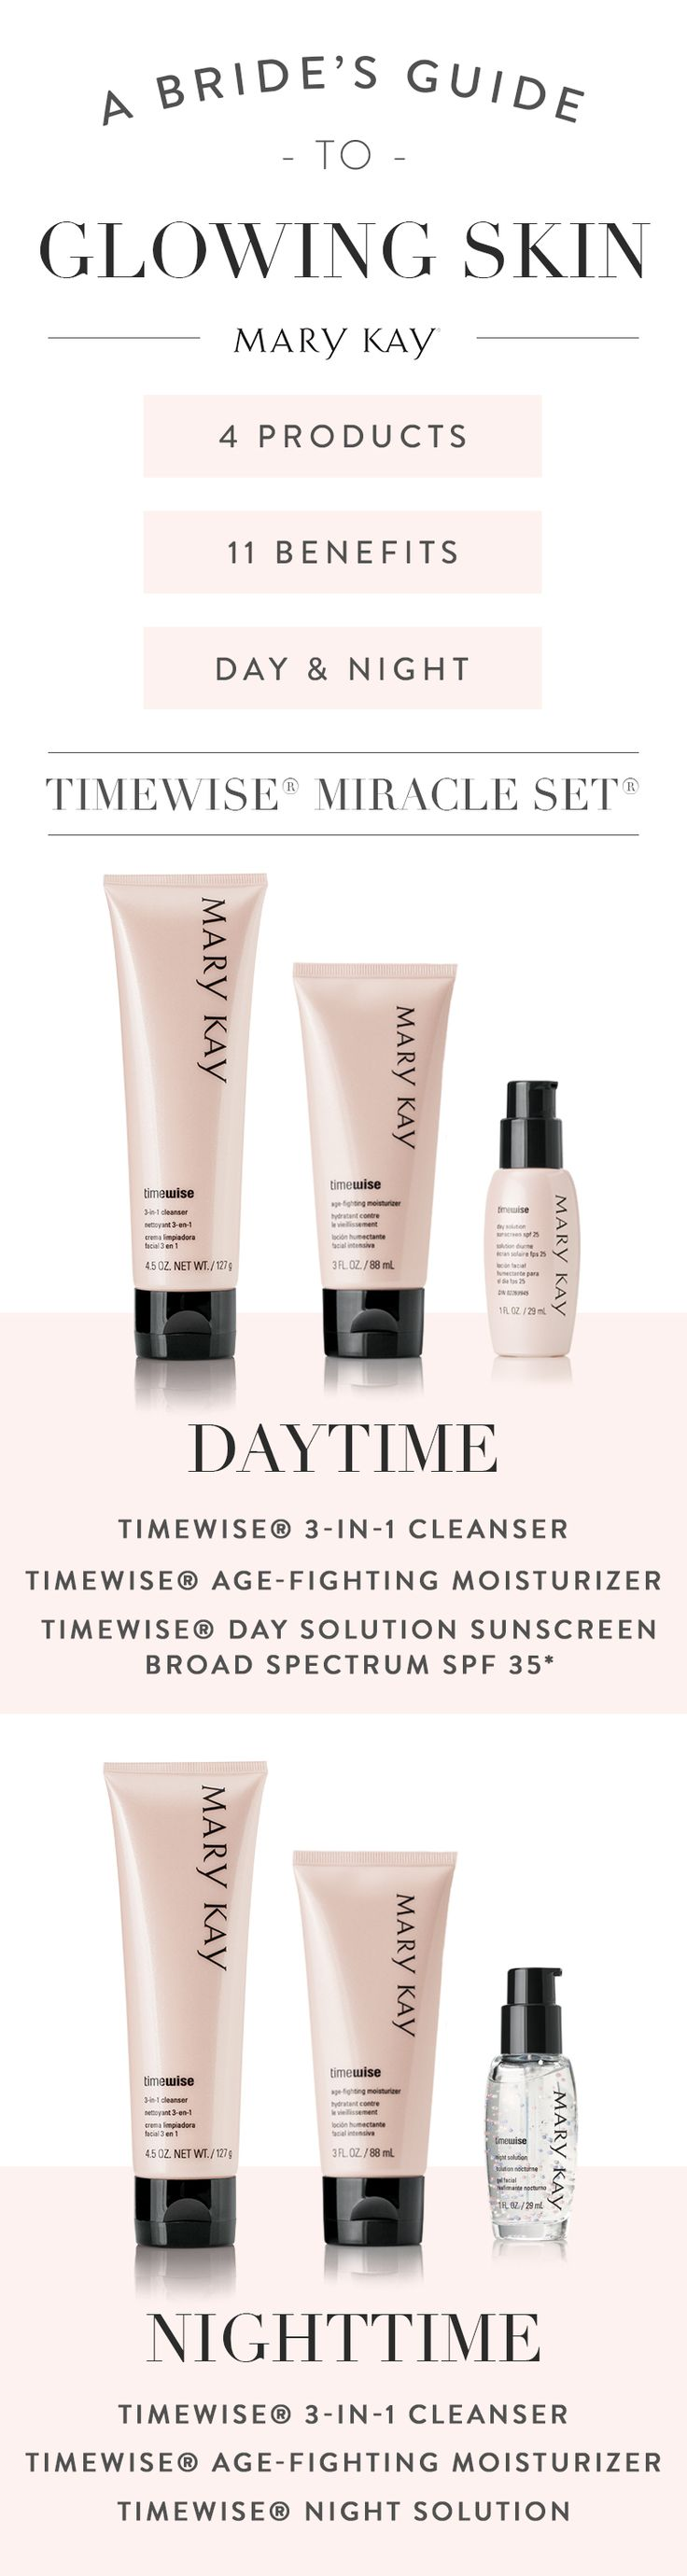 Here comes the glowing bride! Our bestselling TimeWise® Miracle Set® boasts 11 age-defying benefits, for use day and night. | Mary Kay